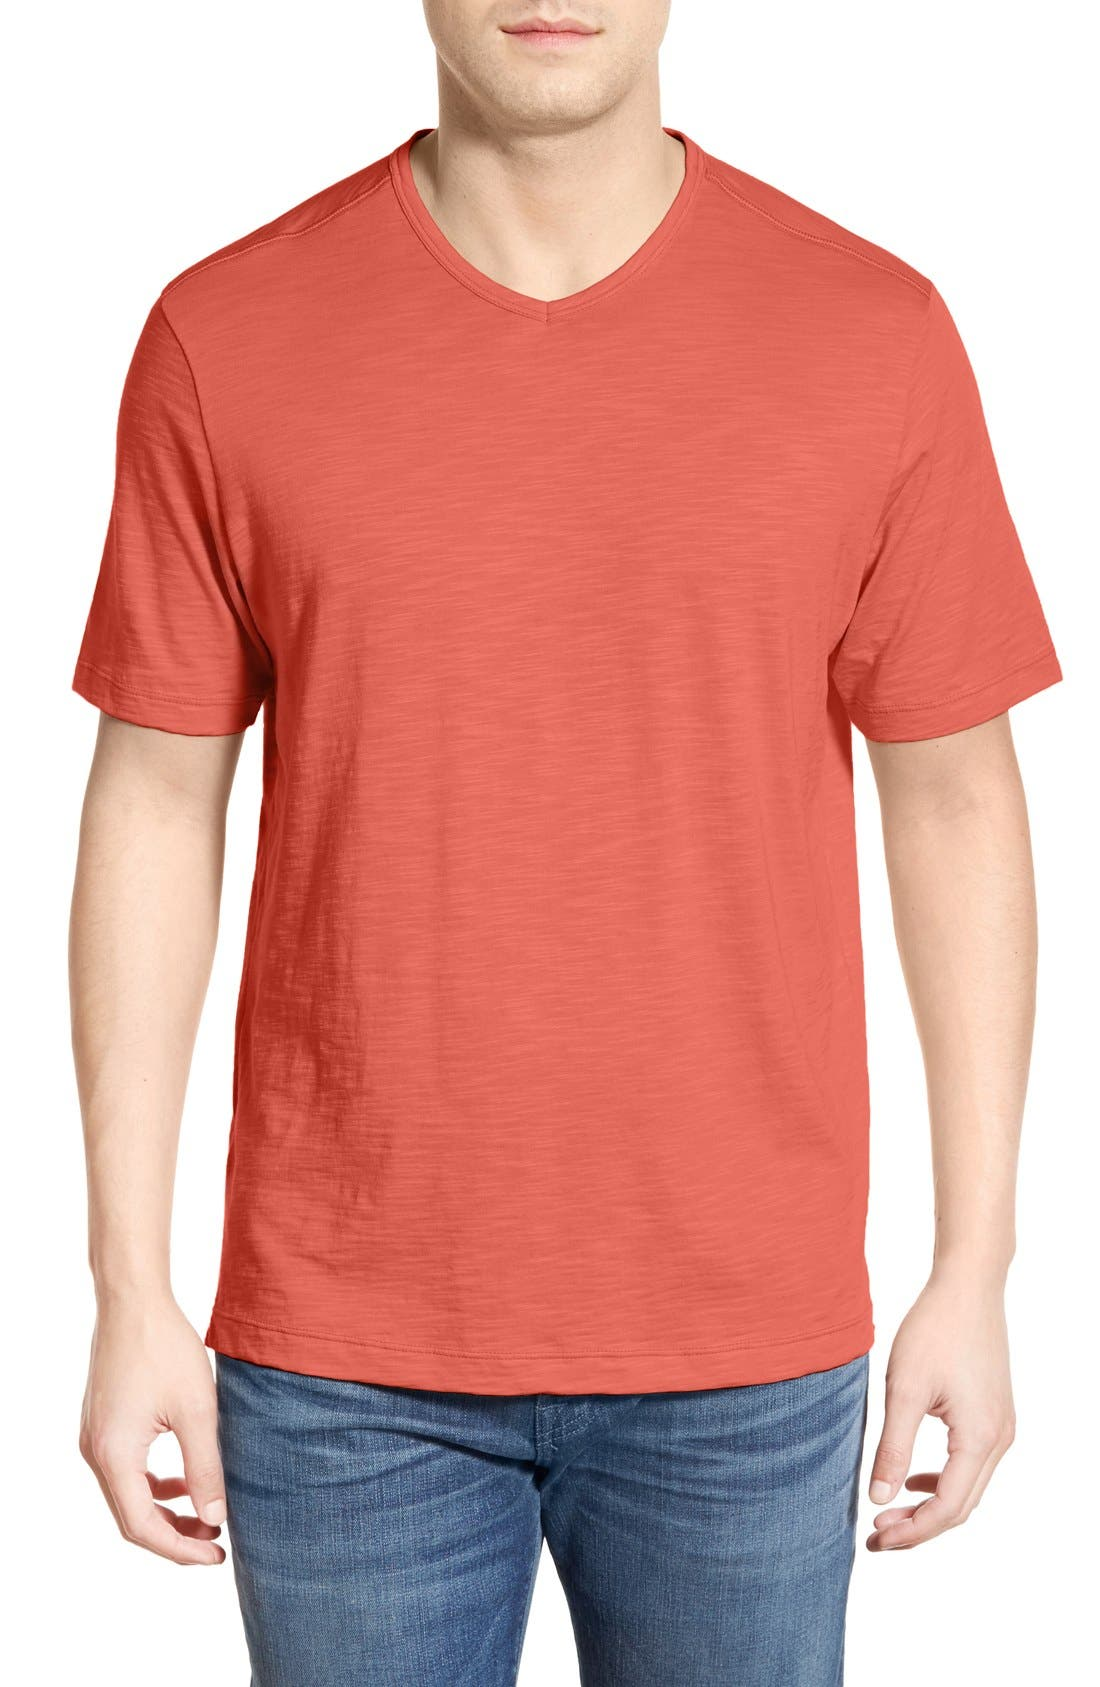 Tommy Bahama 'Portside Player' Pima Cotton T-Shirt